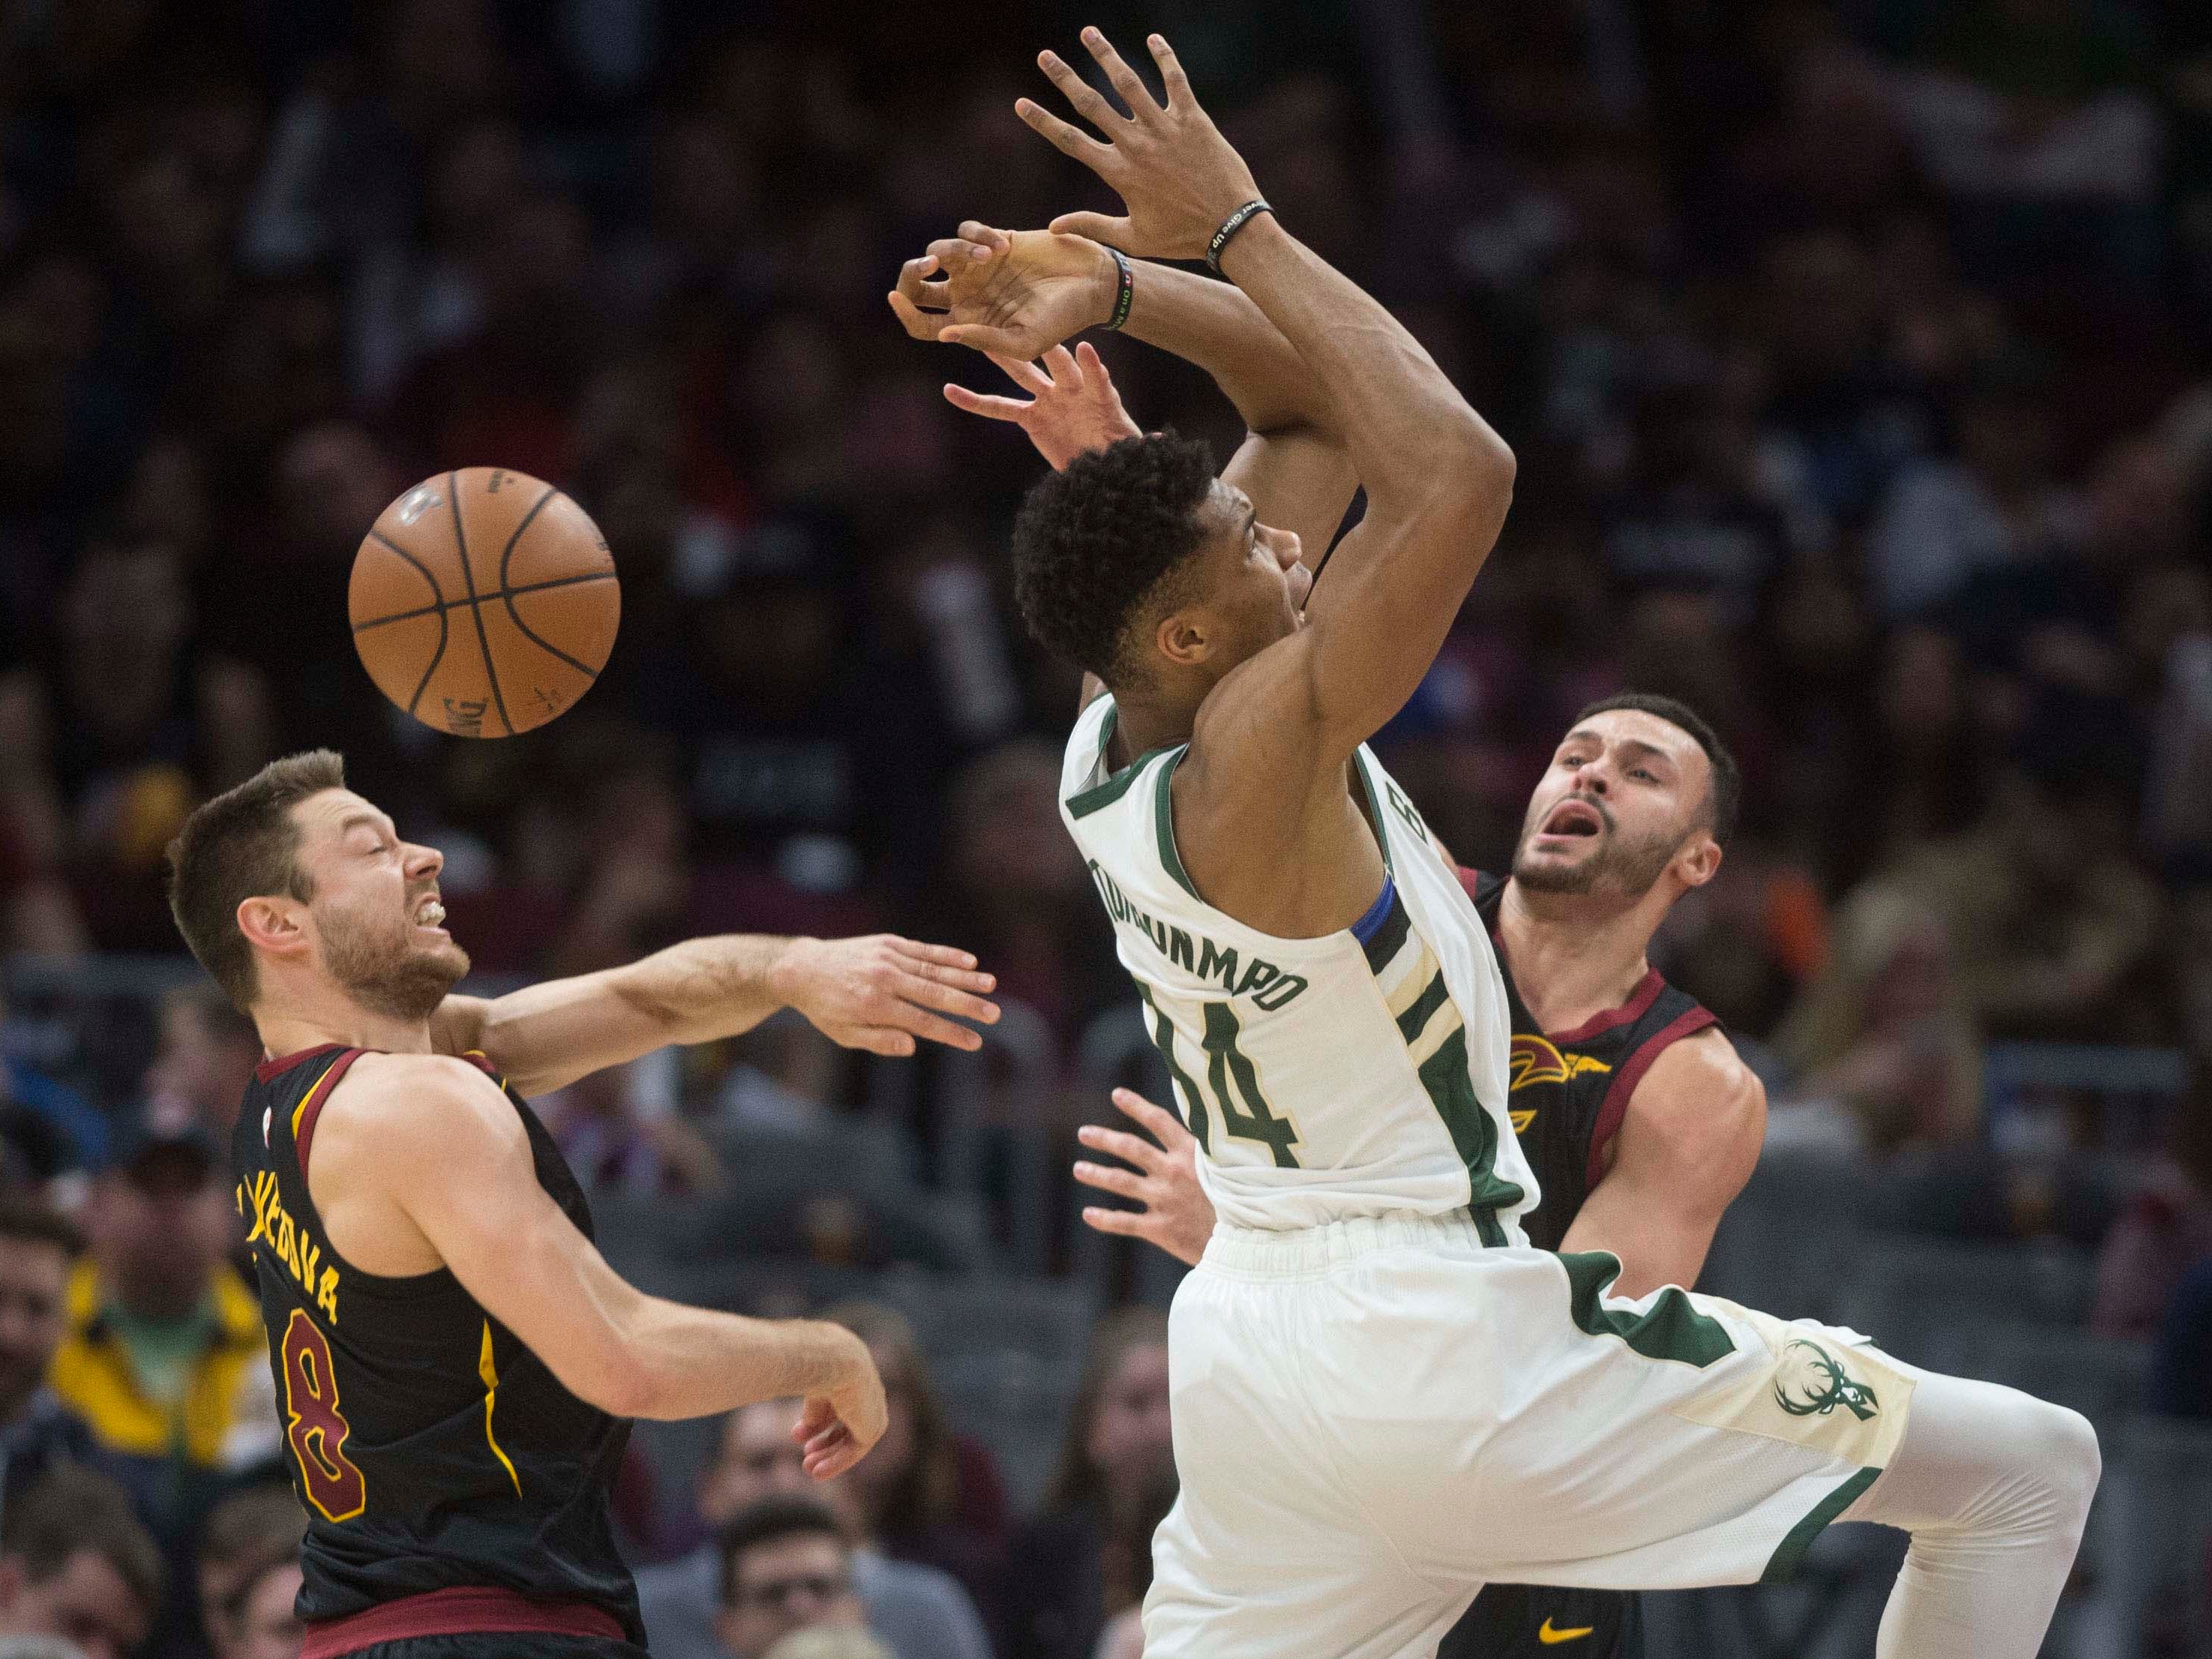 Bucks forward Giannis Antetokounmpo tries to drive between Cleveland Cavaliers guard Matthew Dellavedova and forward Larry Nance Jr.